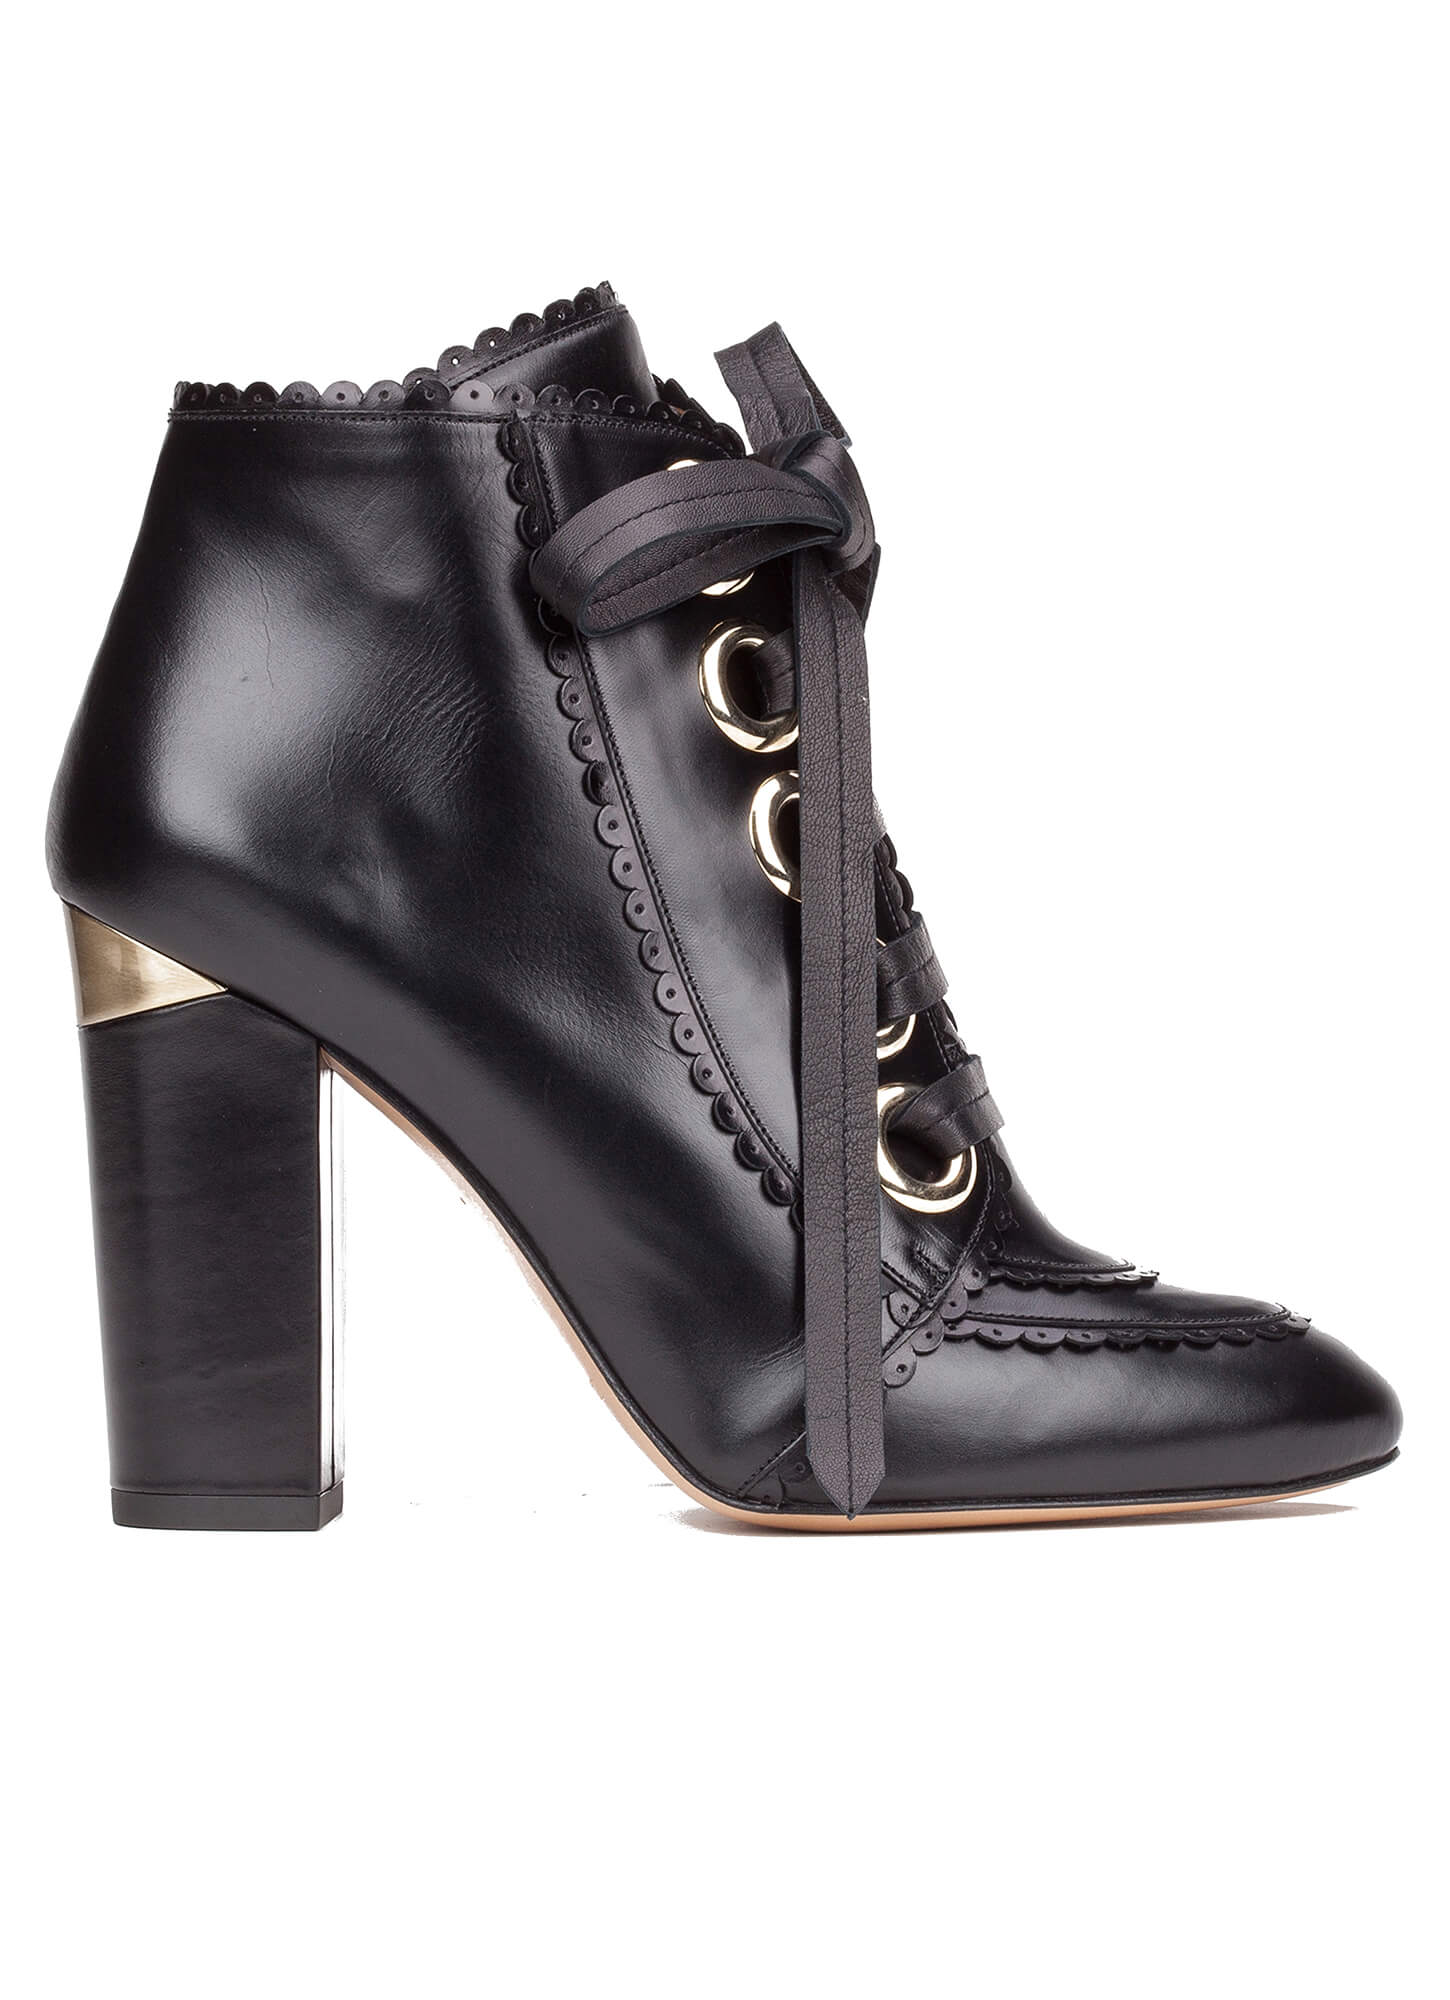 183e93129abe9 ... online shoe store Pura Lopez. Lucie Pura López. Lace-up high block heel  ankle boots in black leather ...